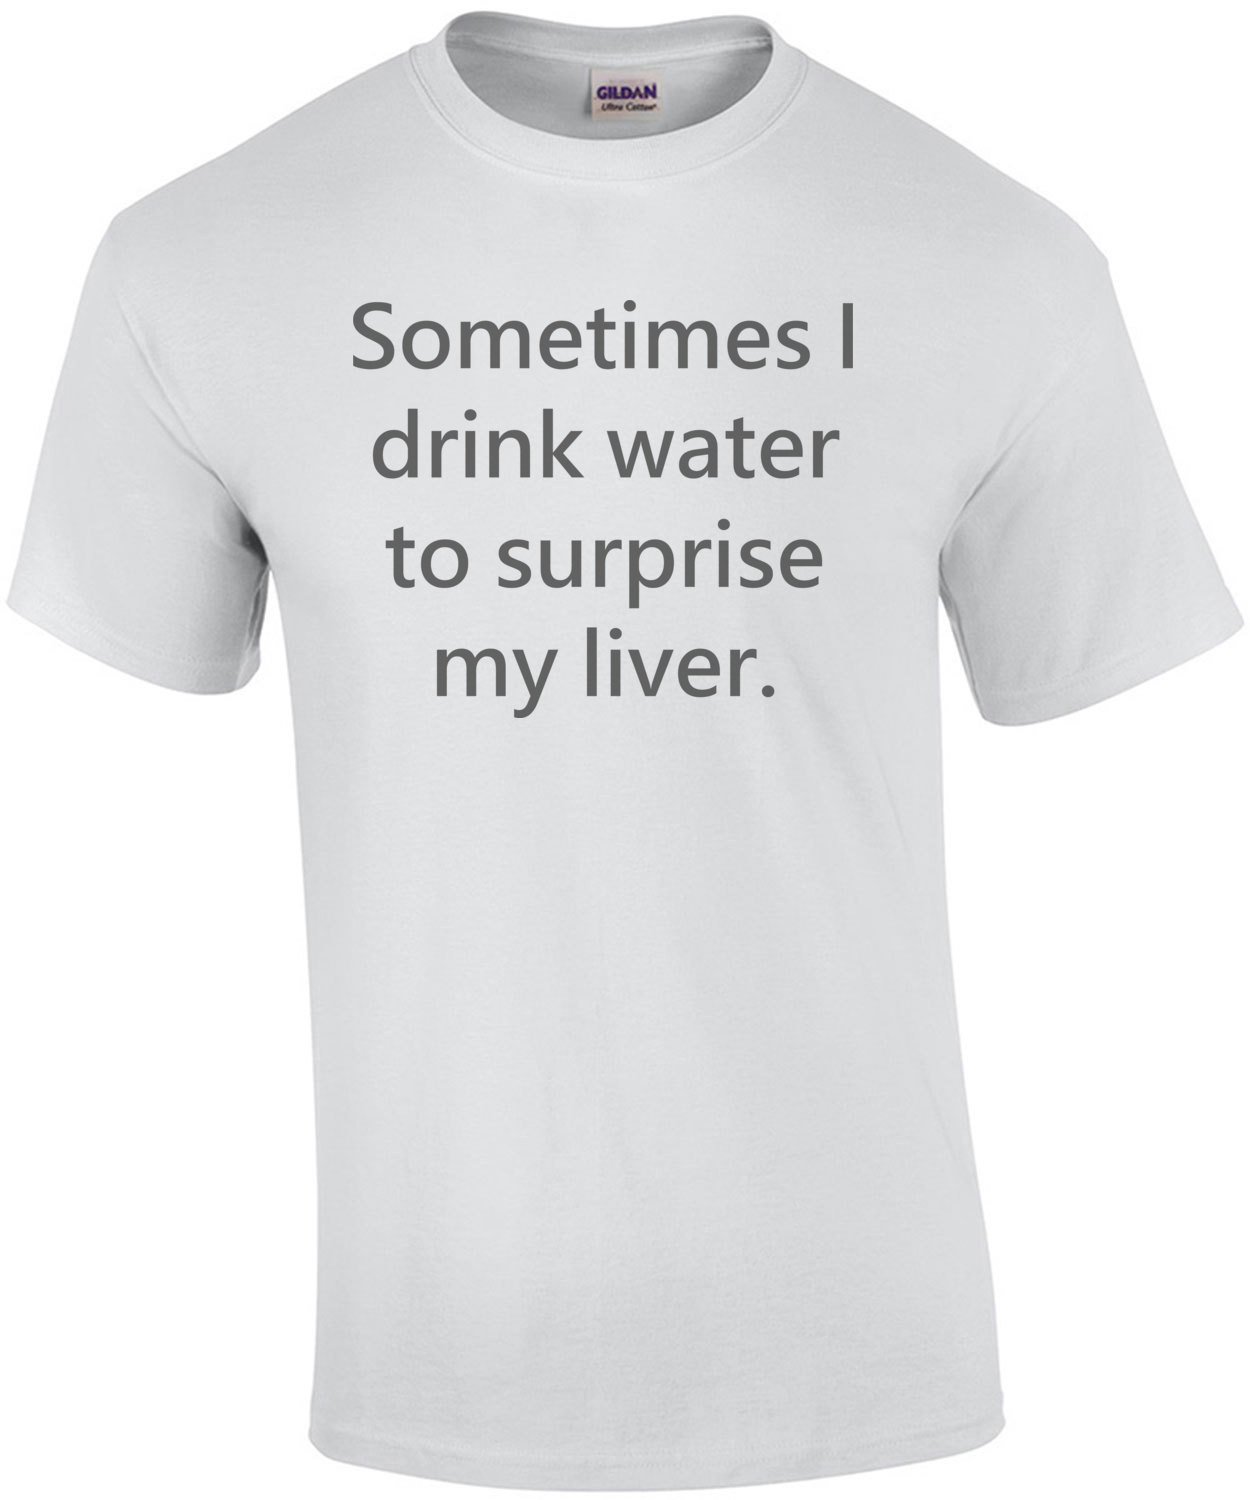 Sometimes I drink water to surprise my liver. Shirt